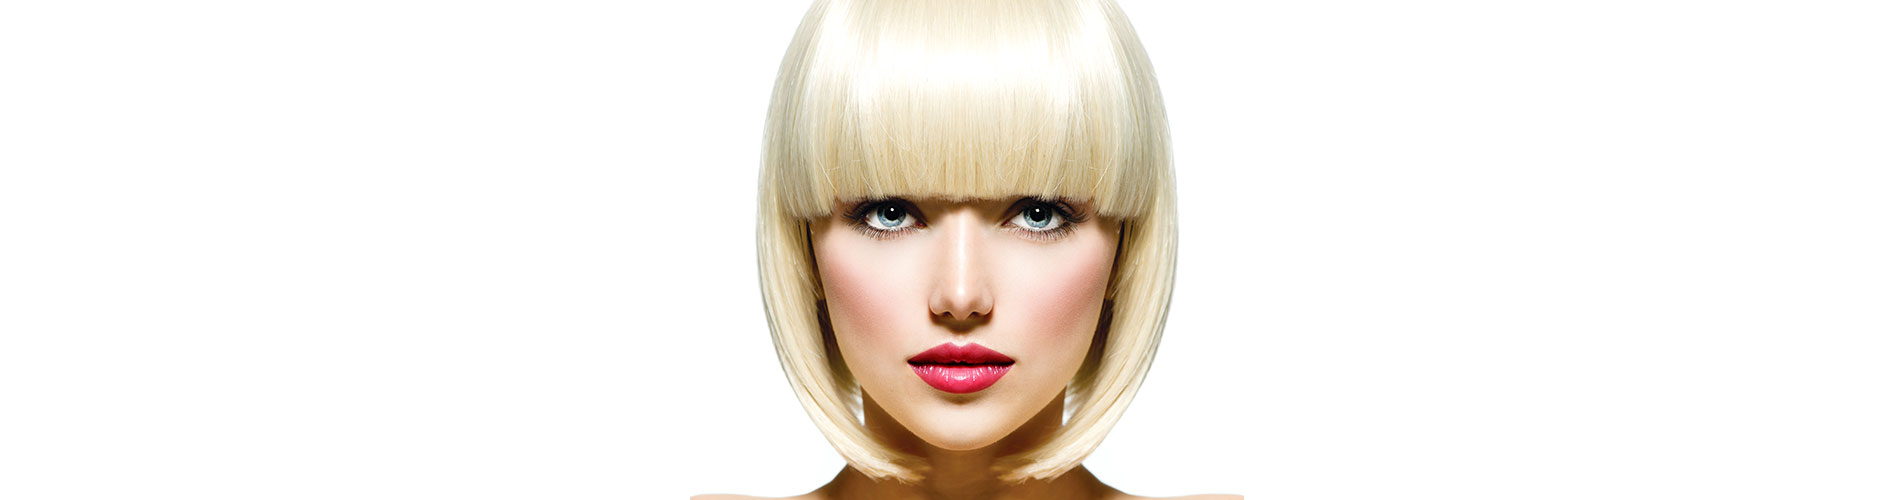 women with short blonde hair and pink lipstick on white background